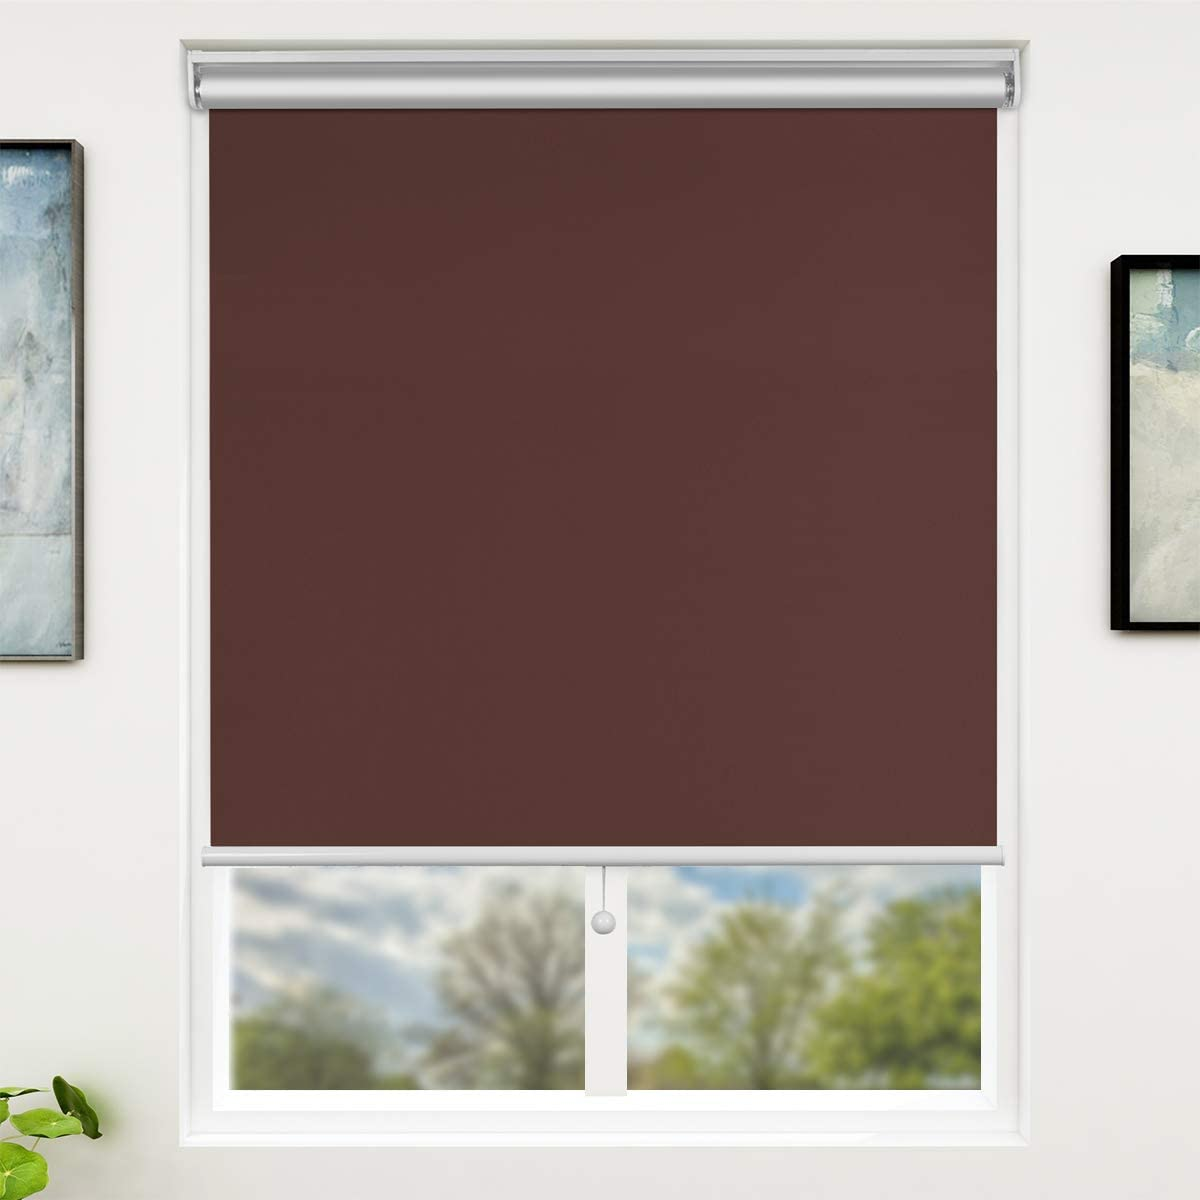 SUNFREE 48 x 72 Inch Blackout Window Shades Cordless Window Blinds with Spring Lifting System for Home & Office, Mocha